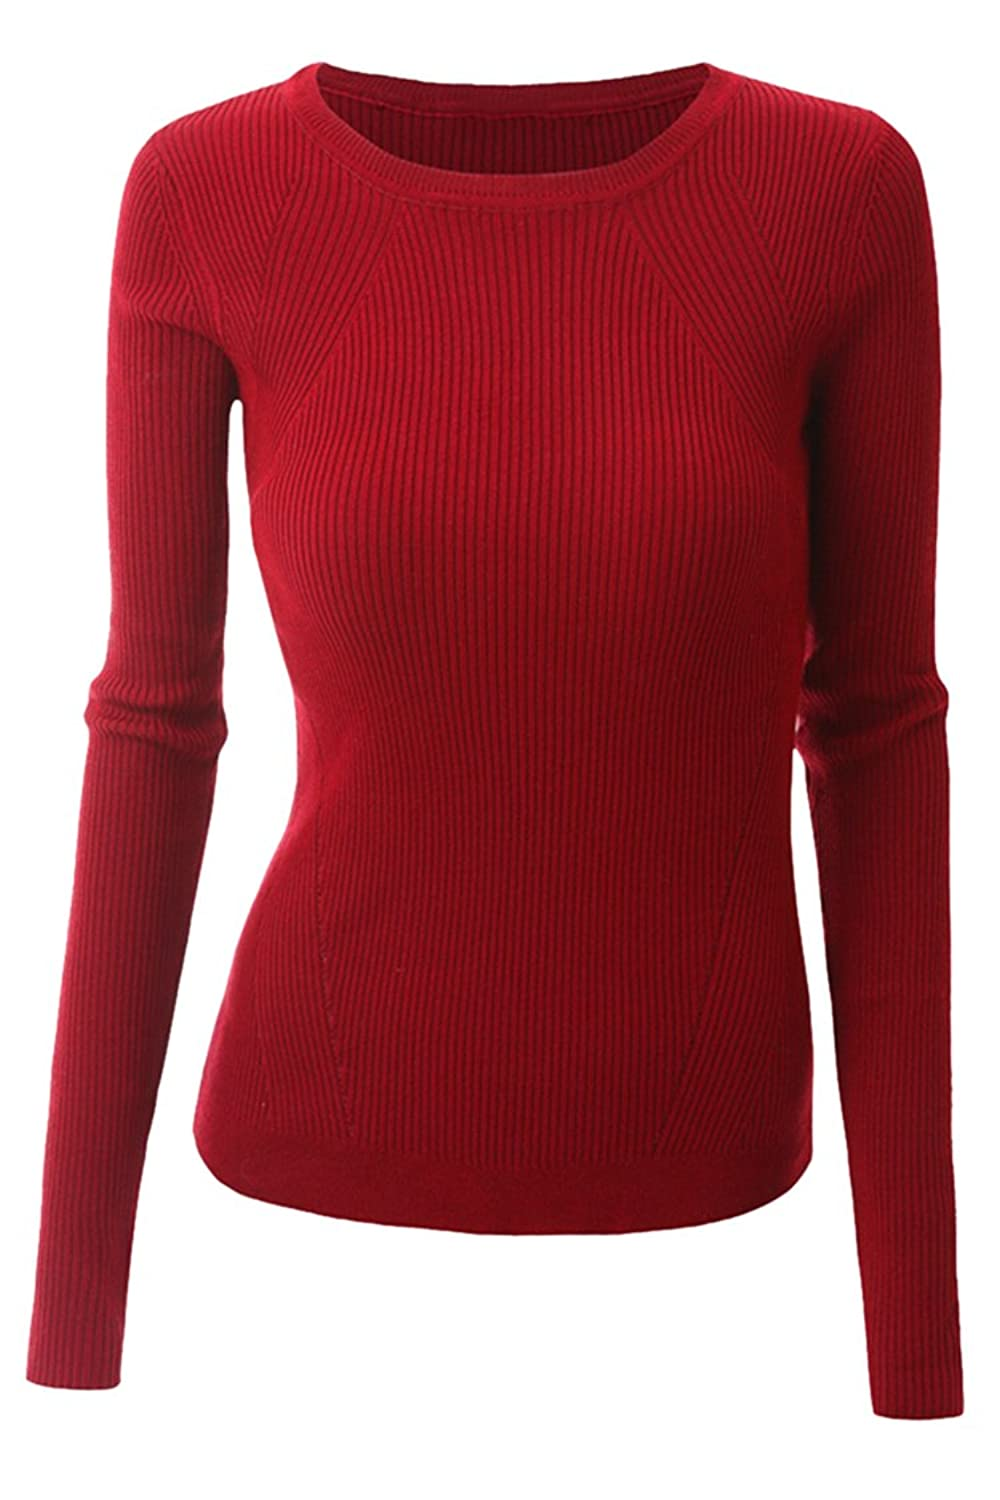 Sovoyant Women's Classic Round Neck Slim Fit Long Sleeve Knit Pullover Sweater